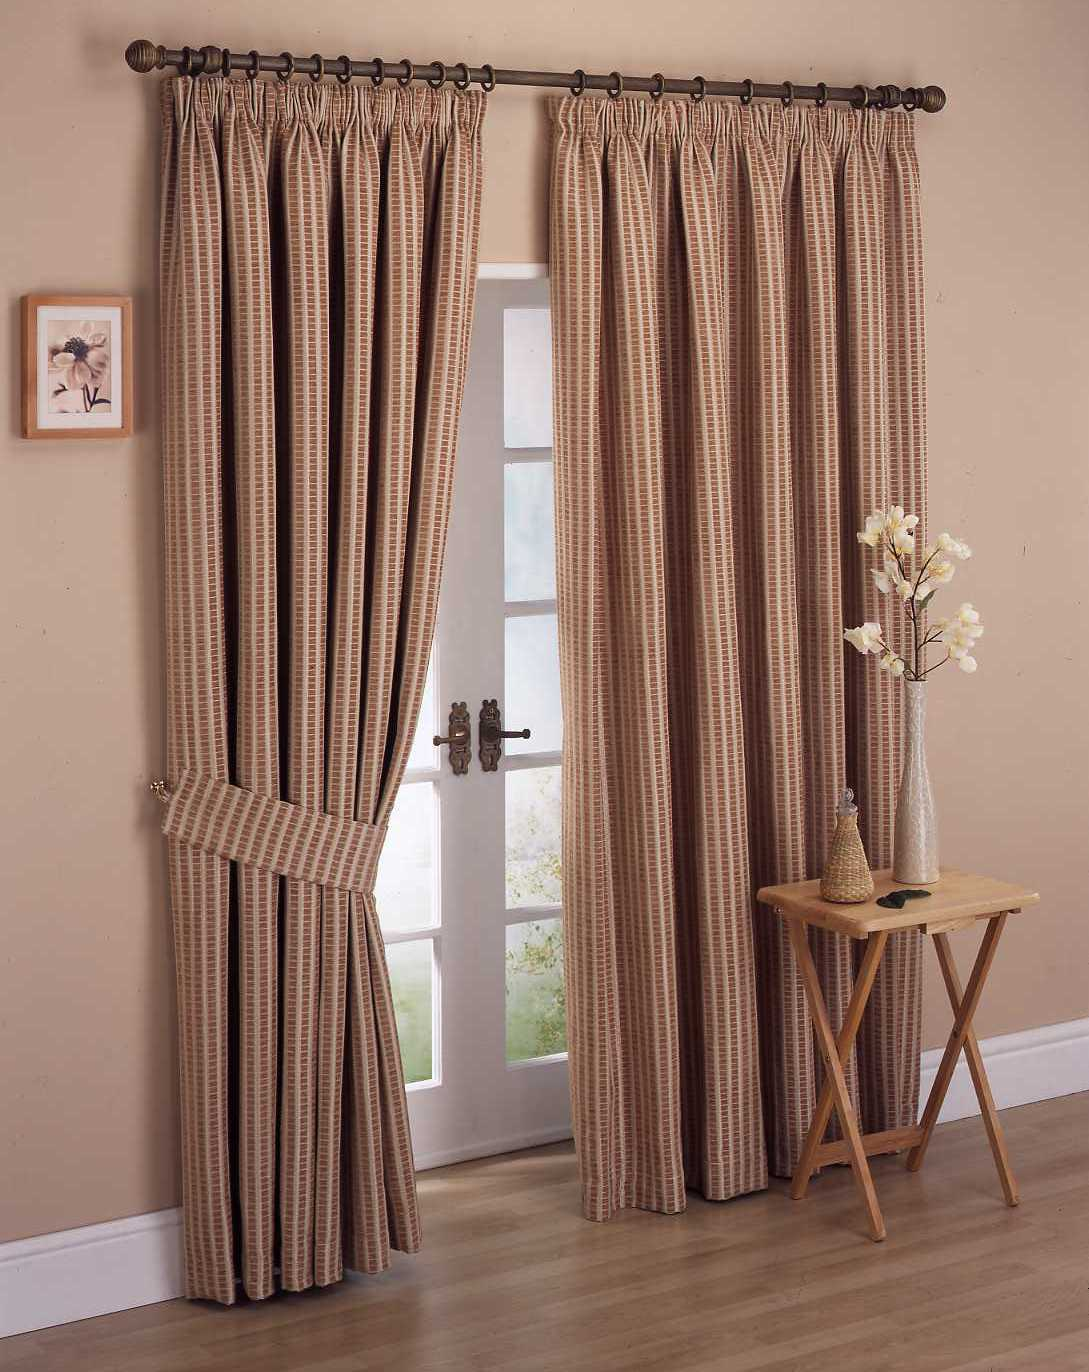 Top catalog of classic curtains designs 2013 - Latest curtain designs for windows ...